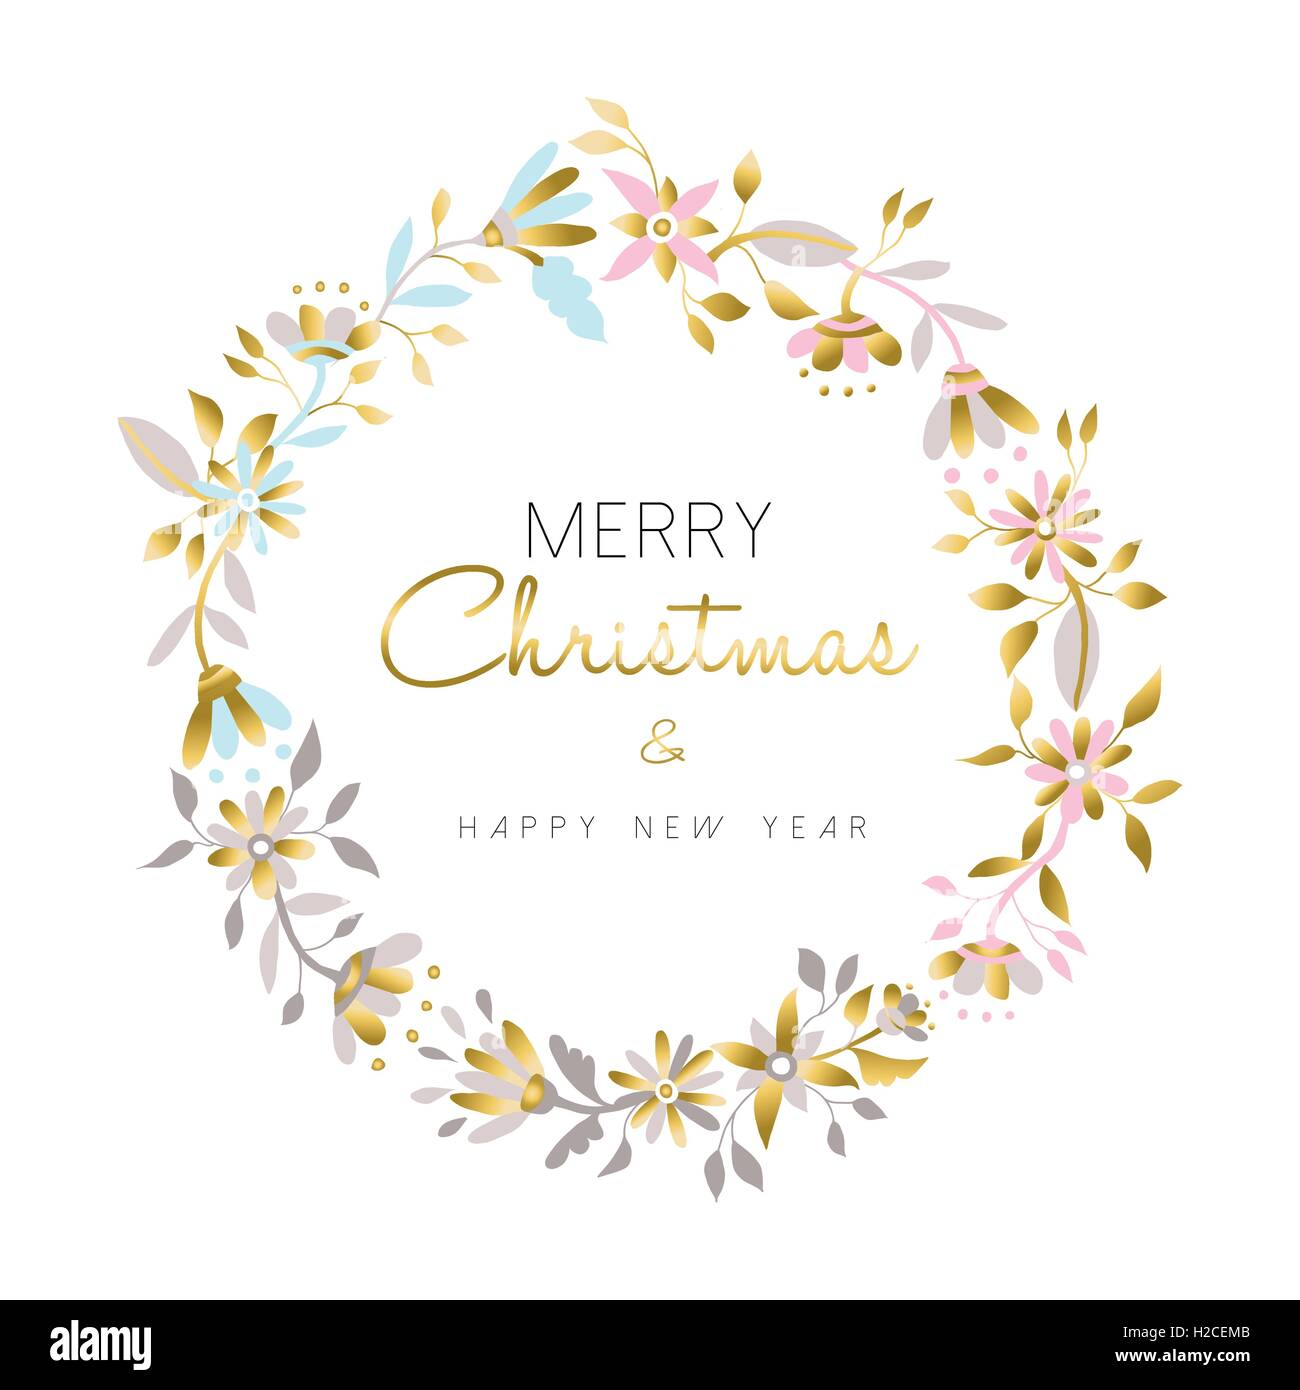 merry christmas and happy new year gold flower wreath christmas decoration in pastel colors over white background